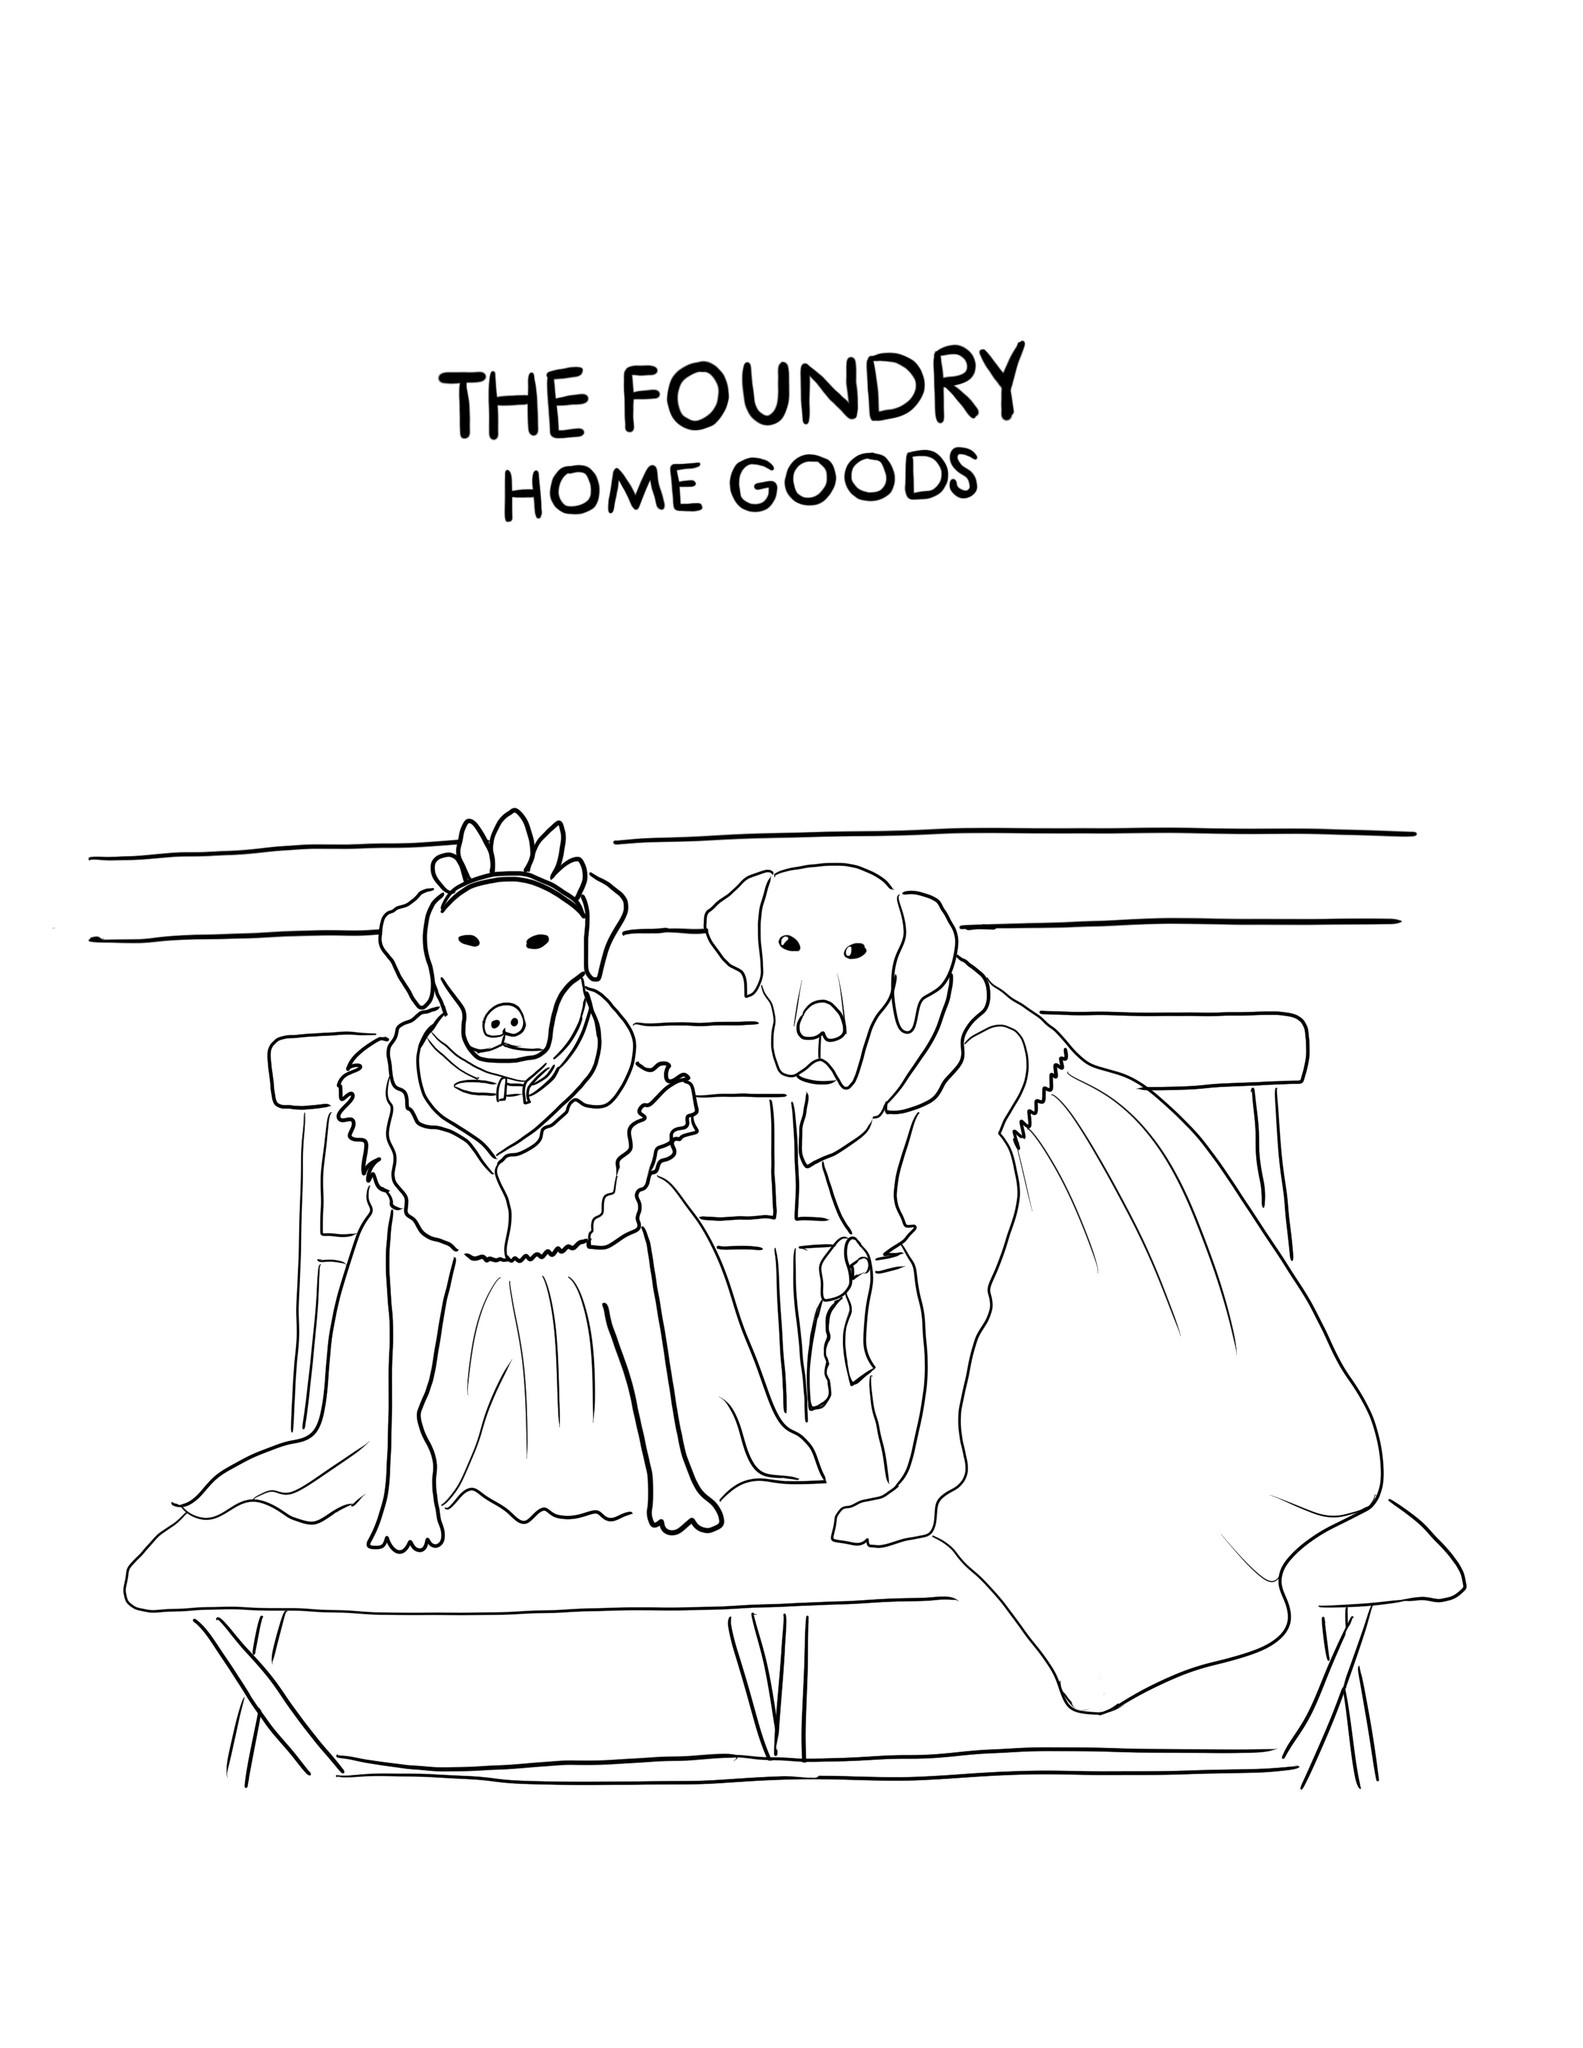 HomeGood: Printable Foundry-Made SHOPDOG Coloring Pages!